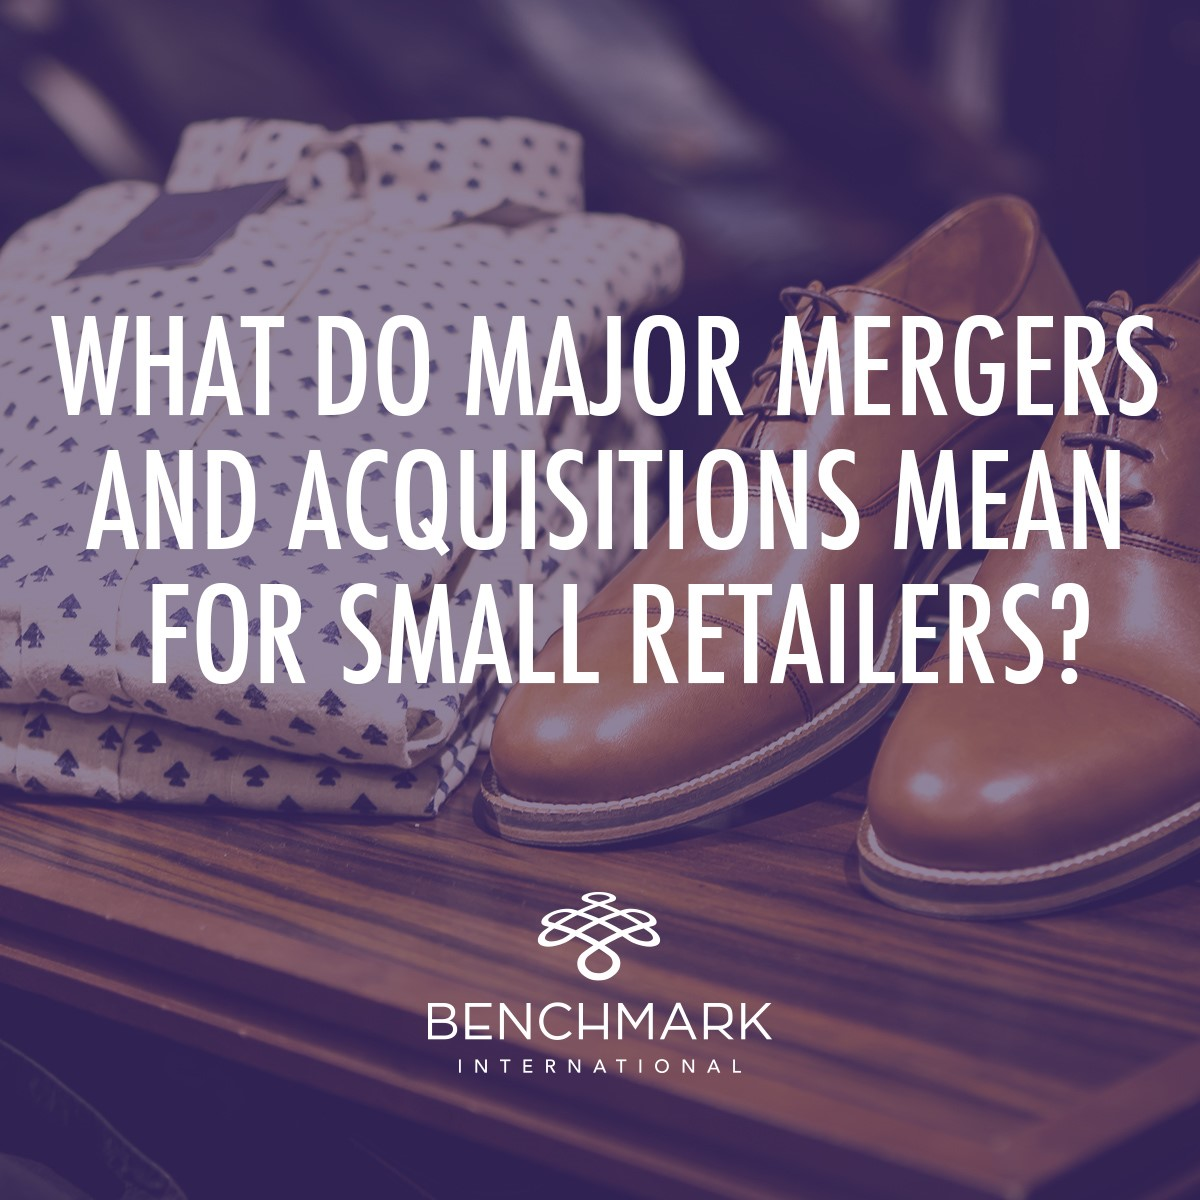 What Do Major Mergers and Acquisitions Mean for Small Retailers?